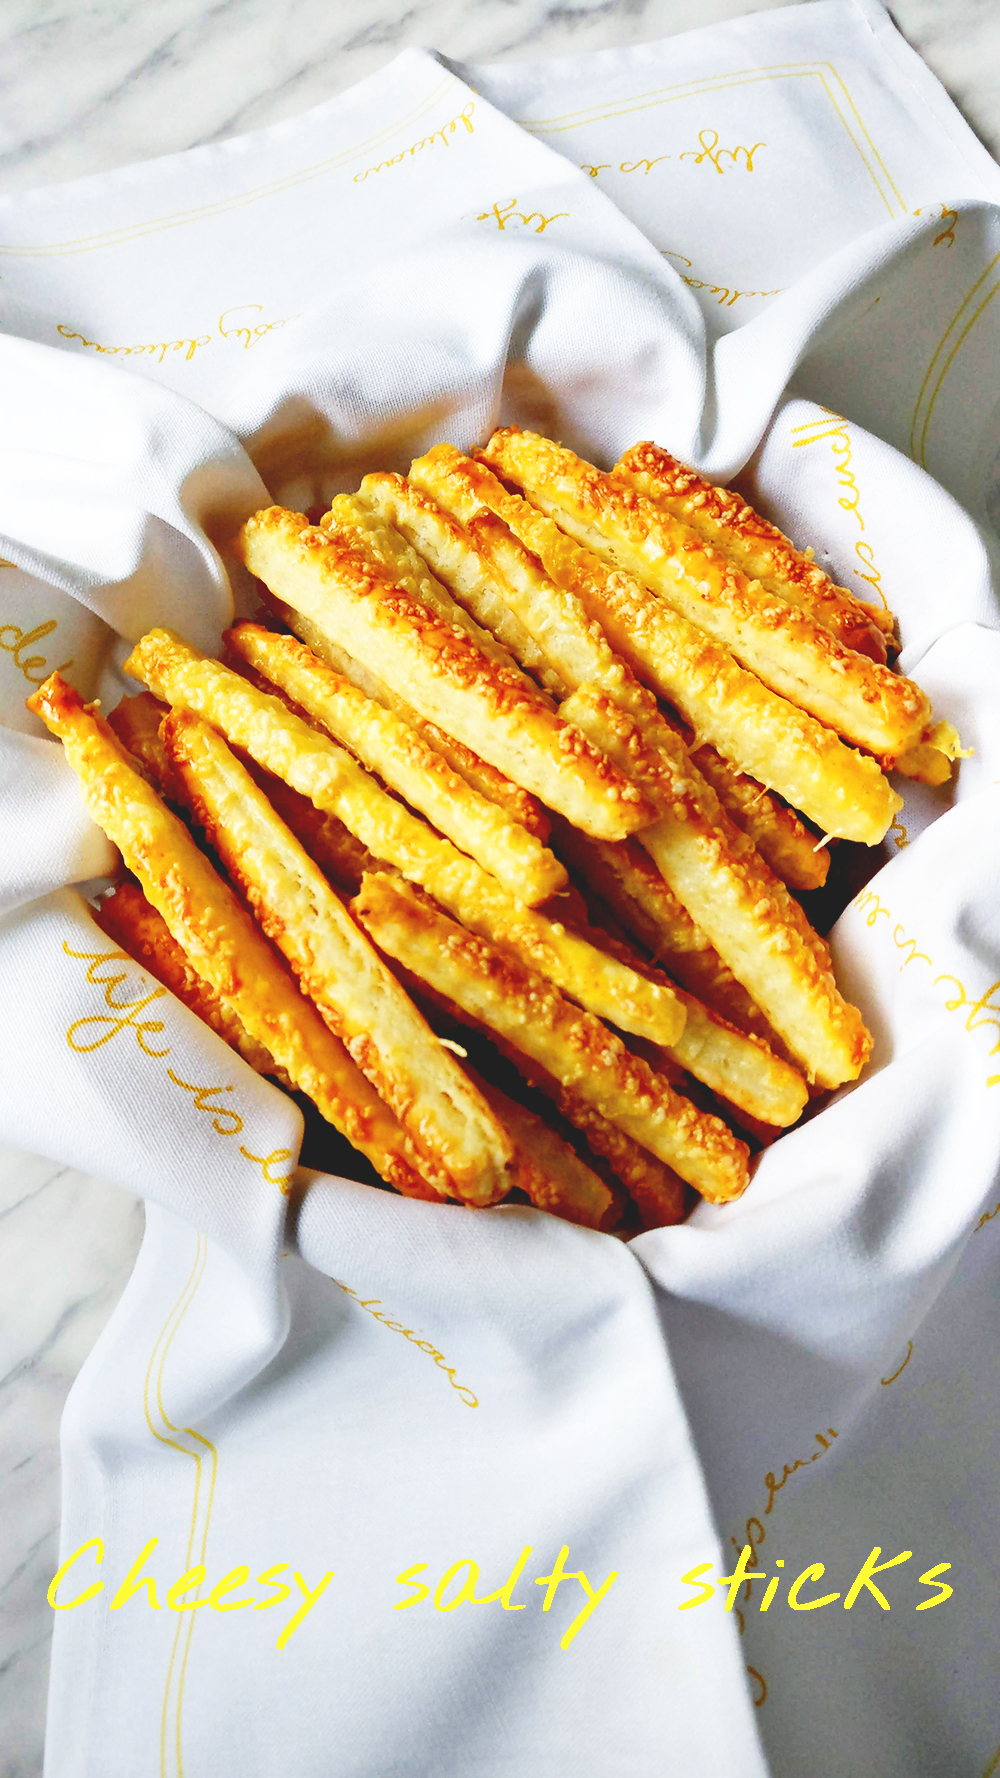 Cheesy salty sticks from 5 ingredients | Aliz's Wonderland #recipe #snack #saltystick